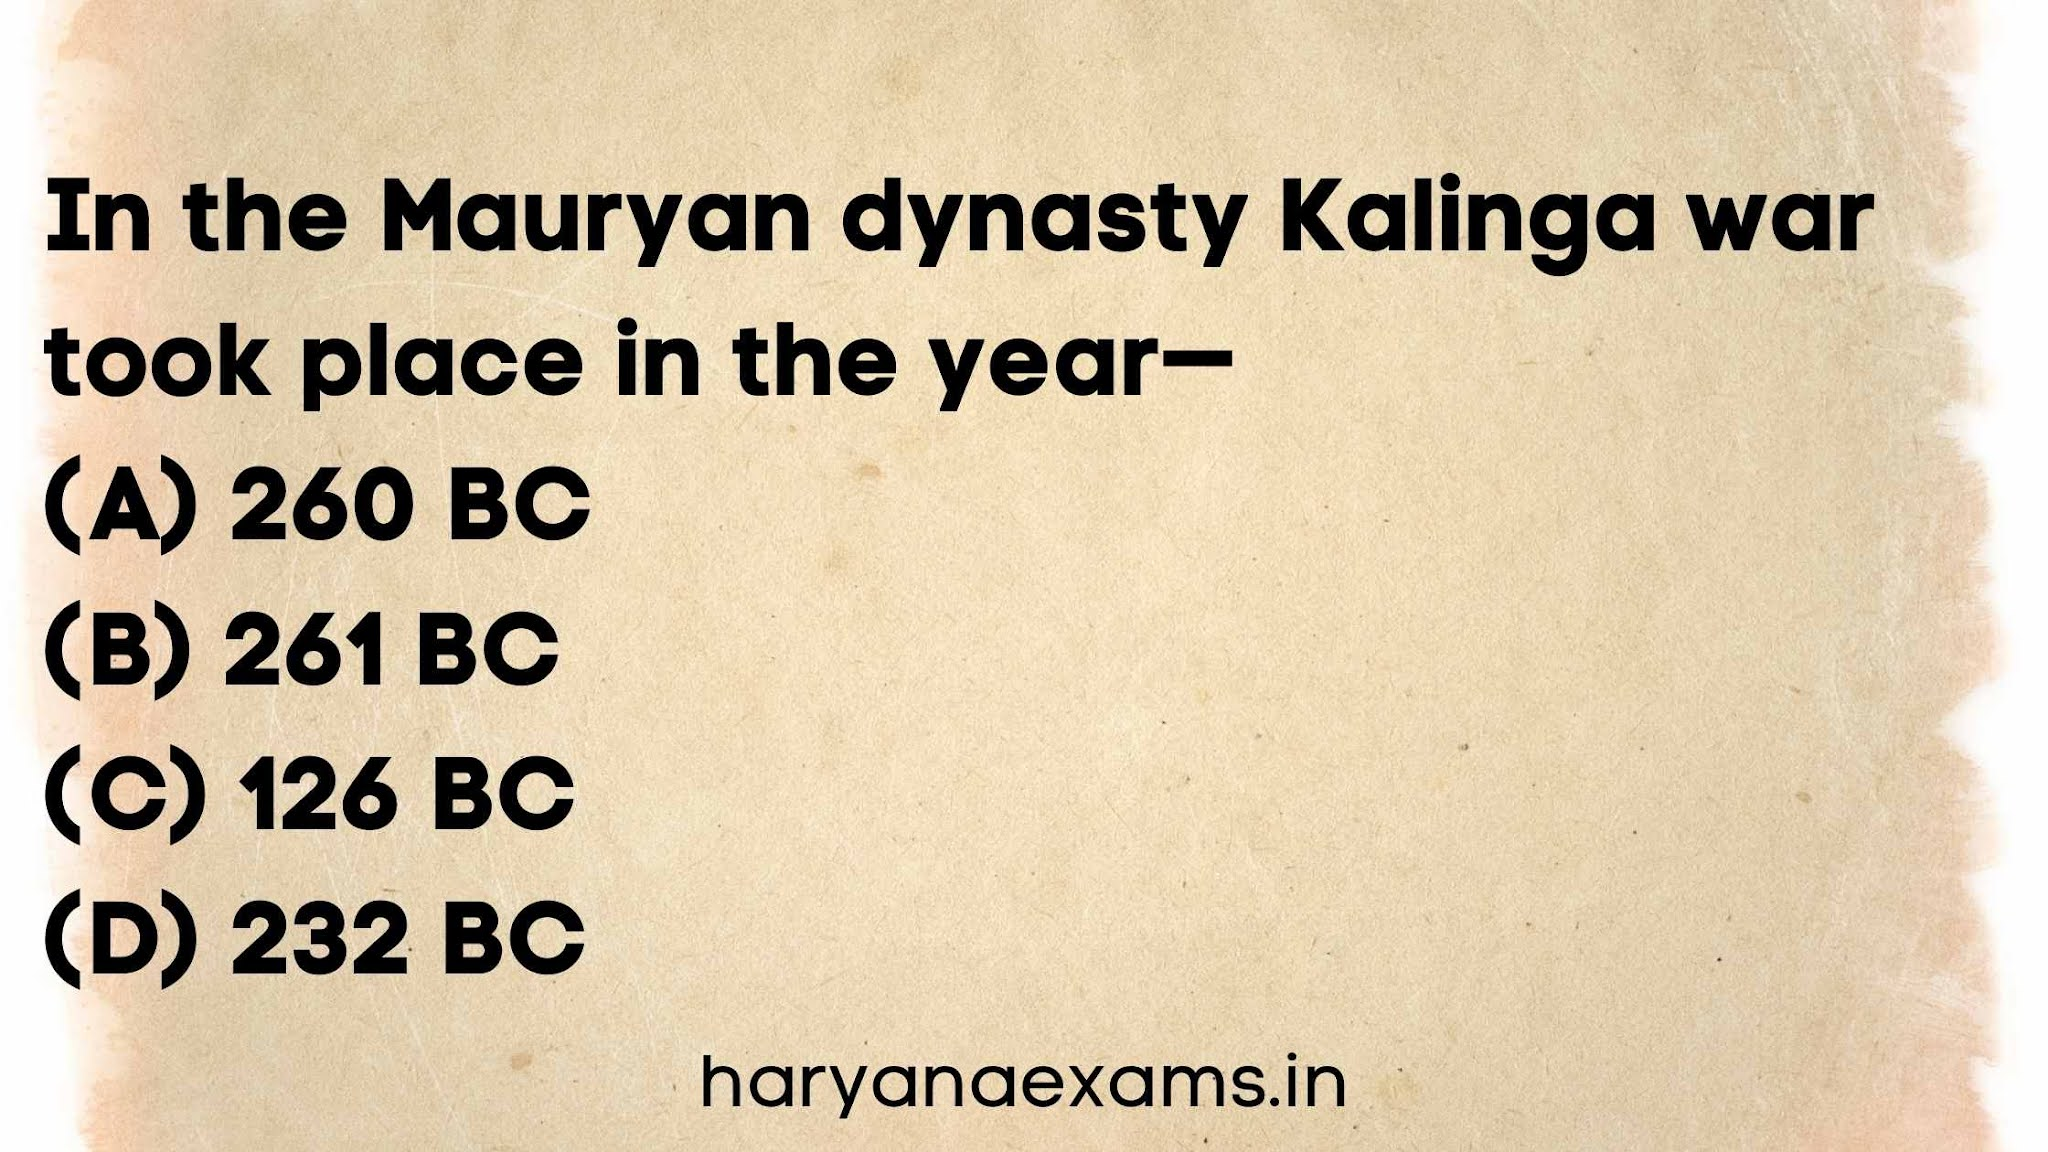 In the Mauryan dynasty Kalinga war took place in the year  (A) 260 BC   (B) 261 BC   (C) 126 BC   (D) 232 BC